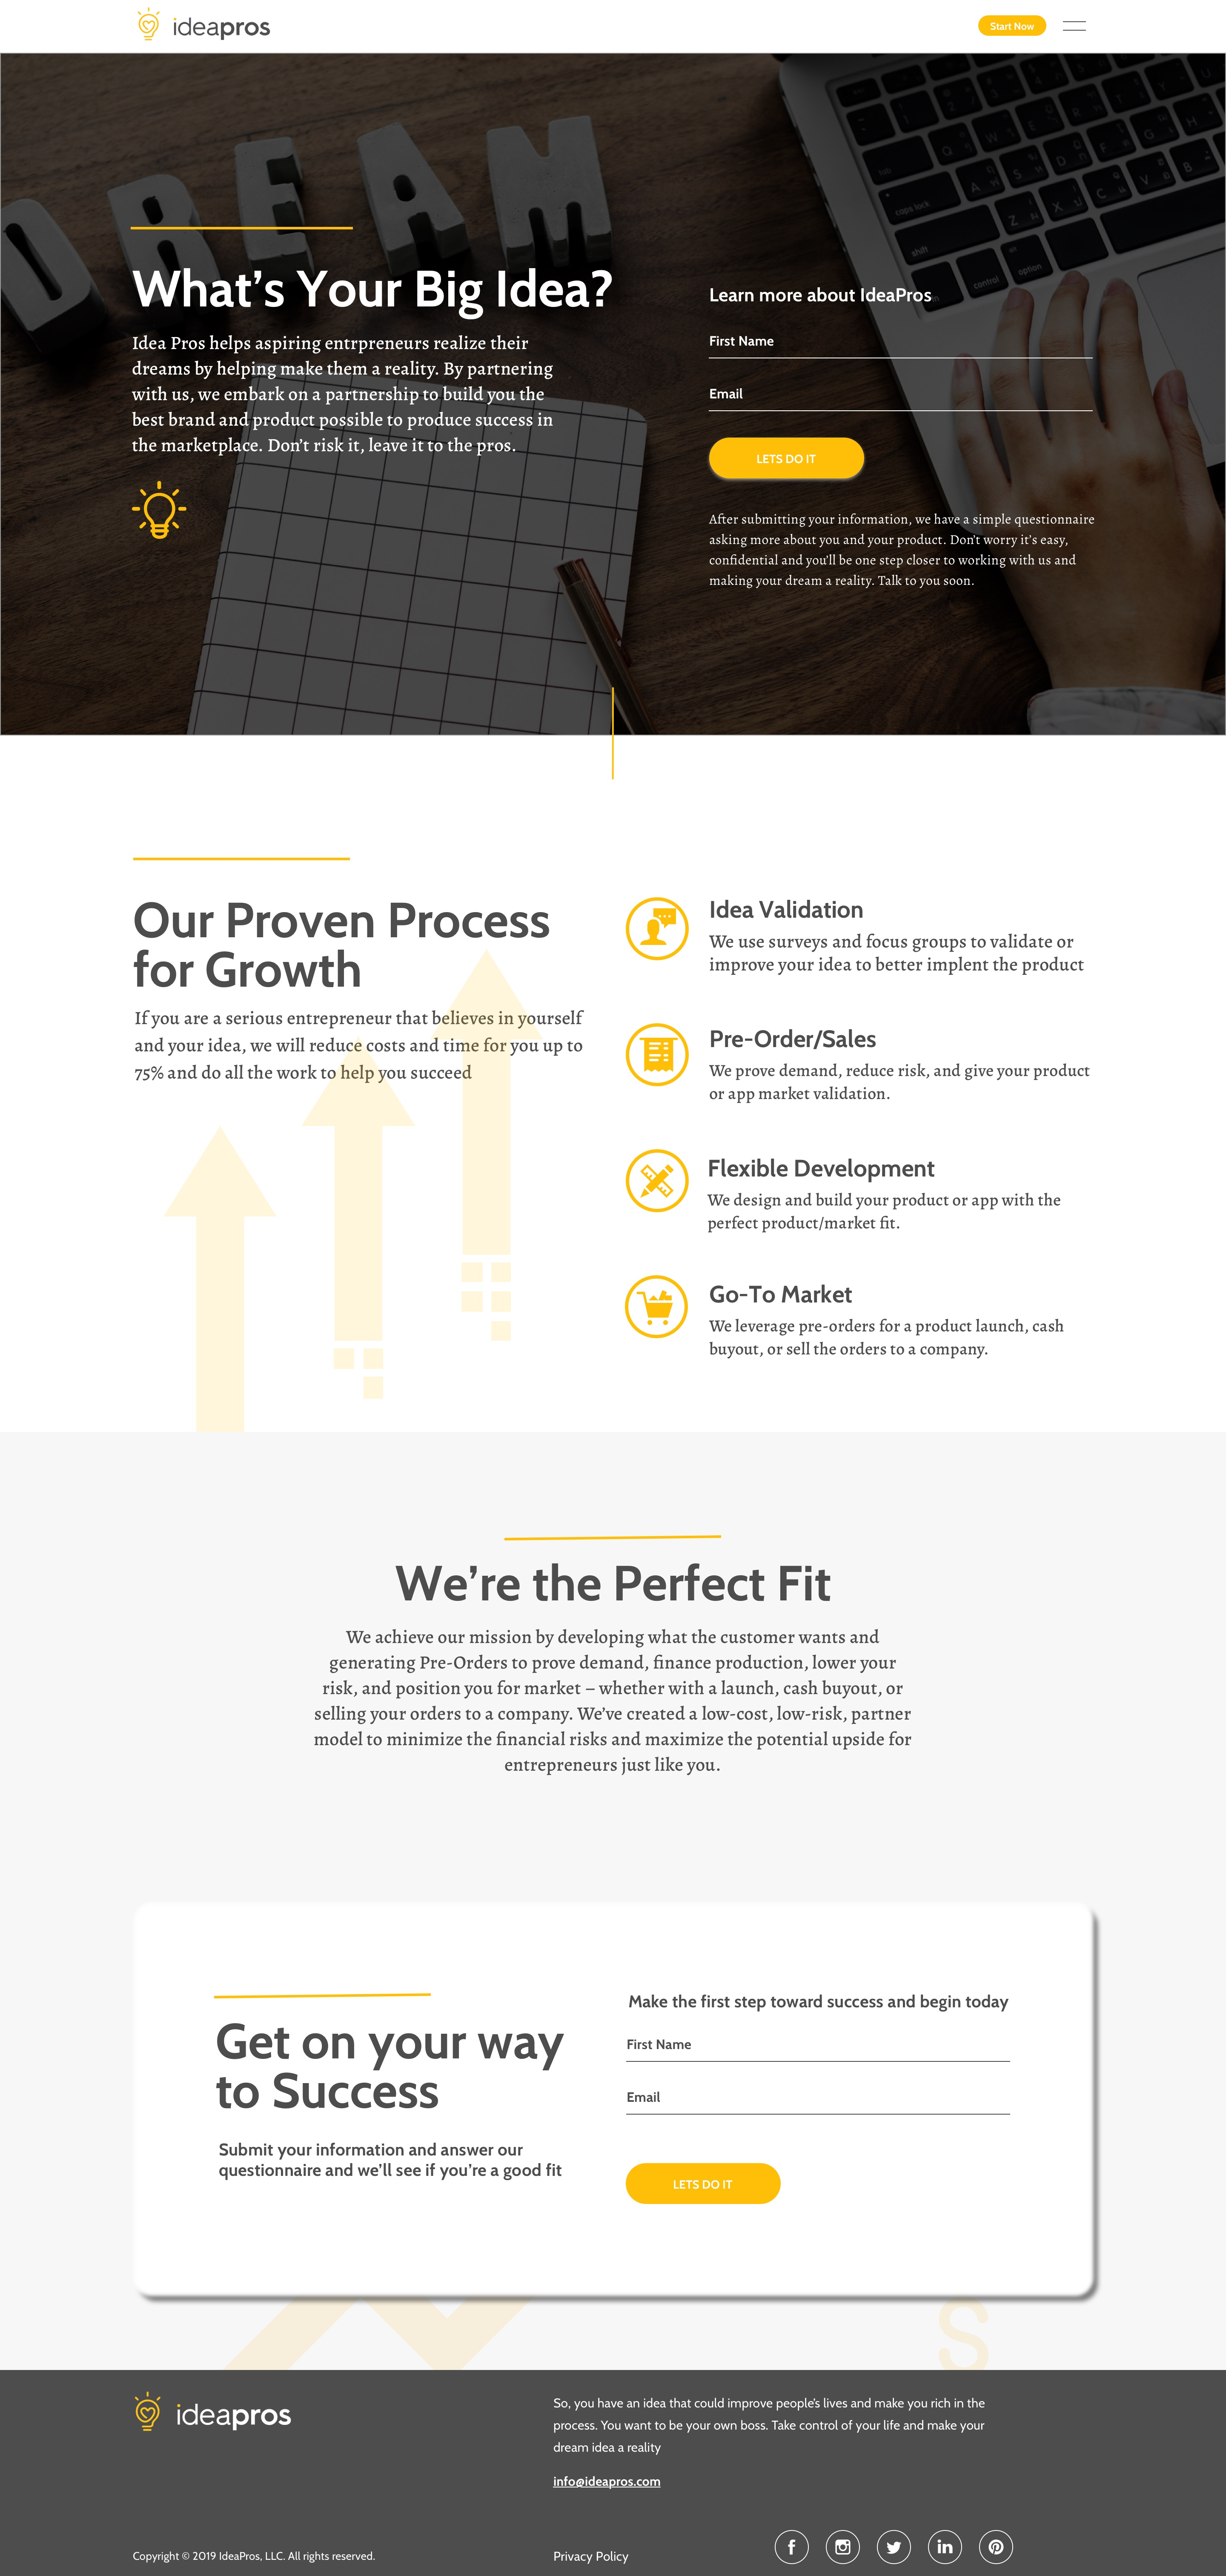 IdeaPros Landing Page Visual Design